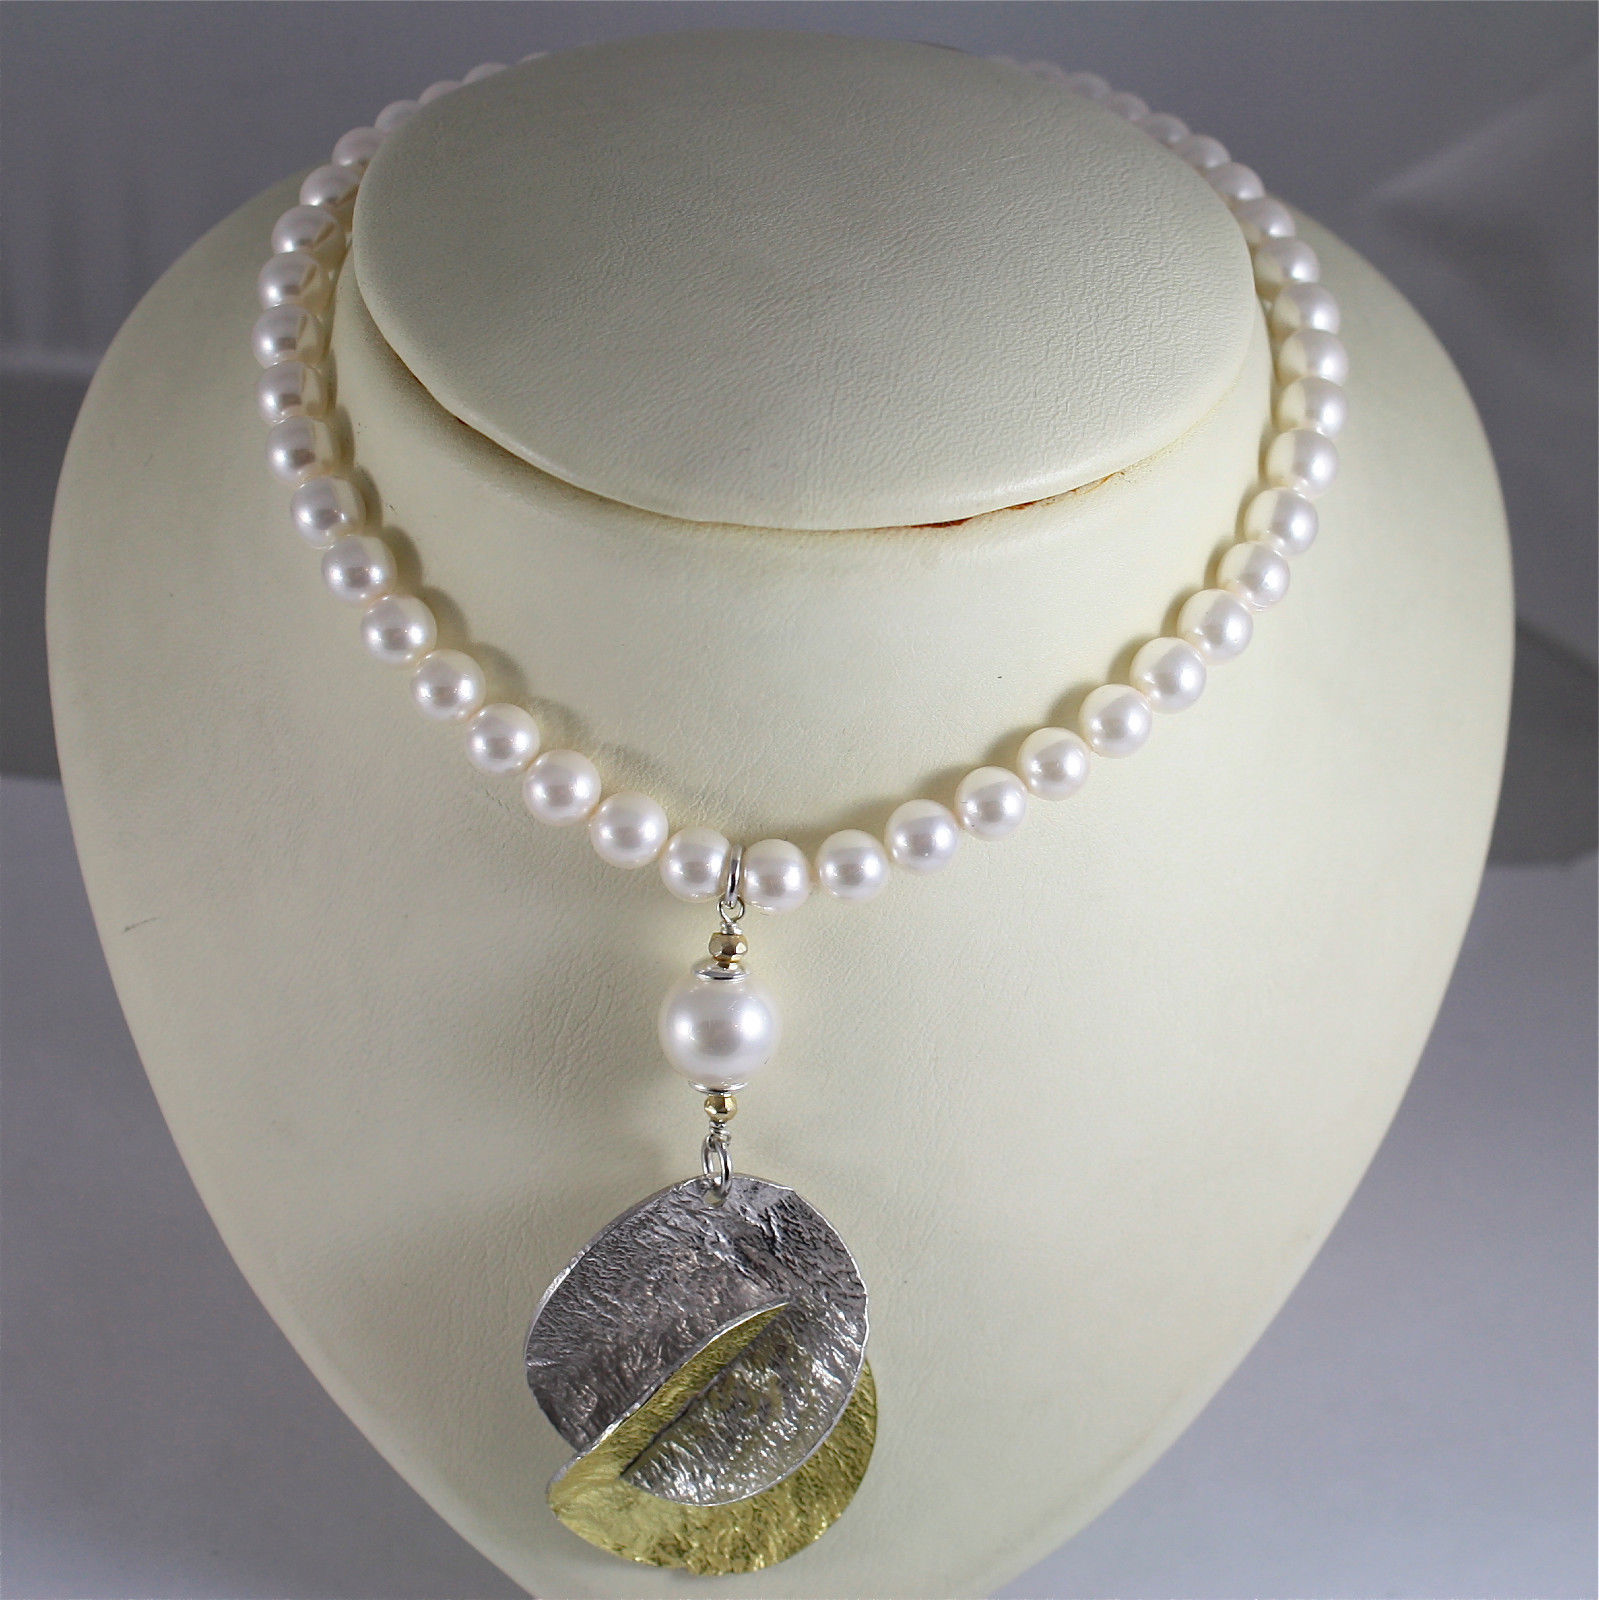 REBUILT PEARLS NECKLACE, .925 RHODIUM SILVER, GOLD PLATED, HAMMER TREATEMENT.